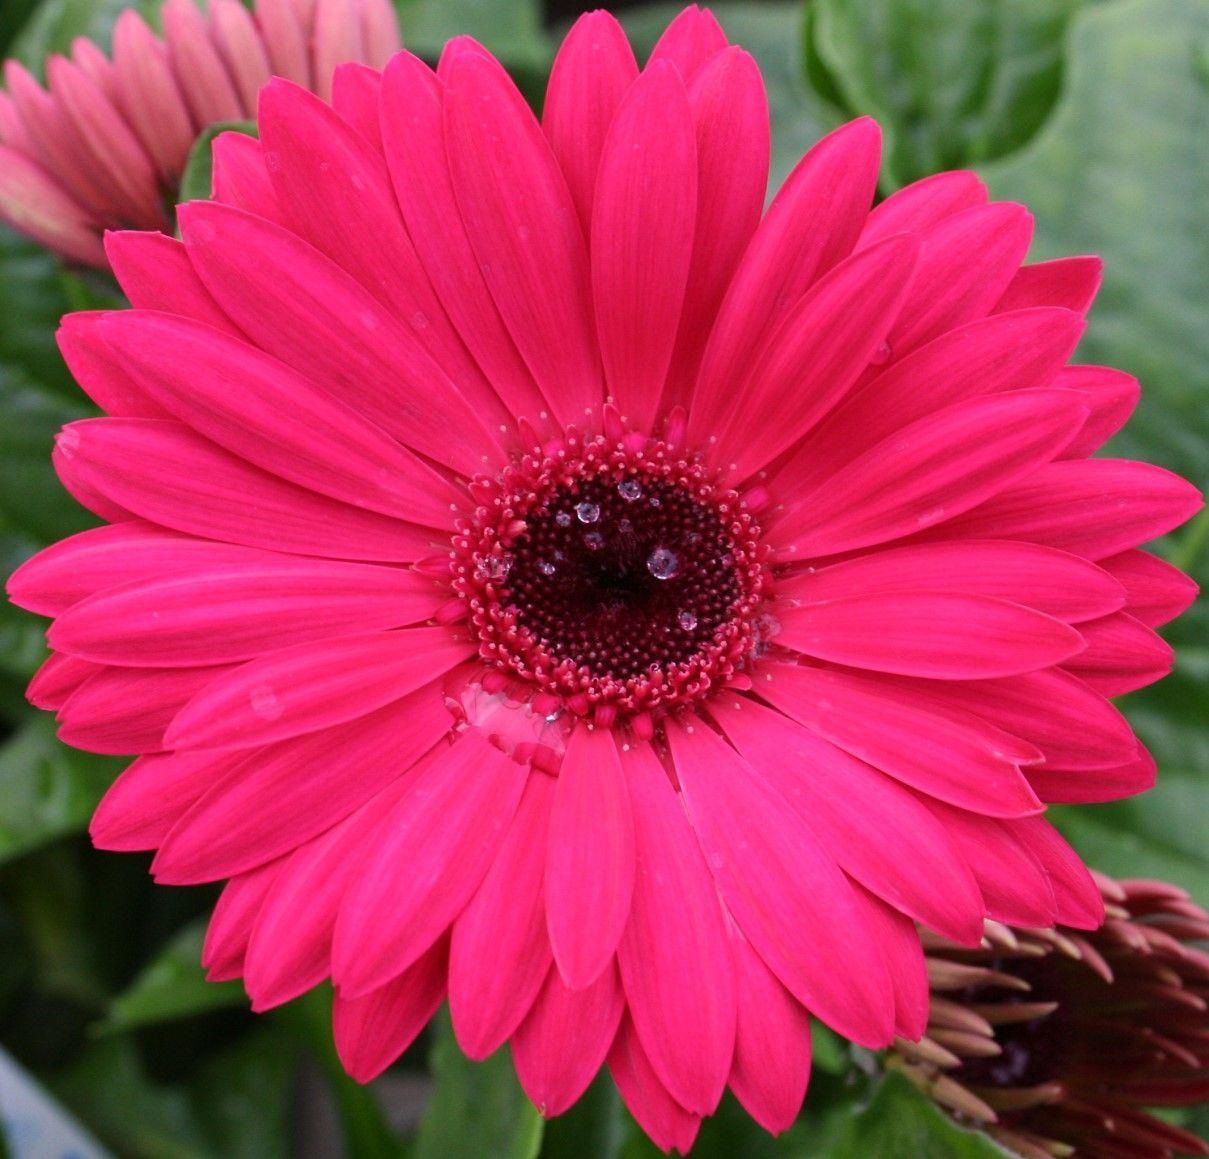 Pink Flowers Wallpaper: Pink Daisy Wallpapers